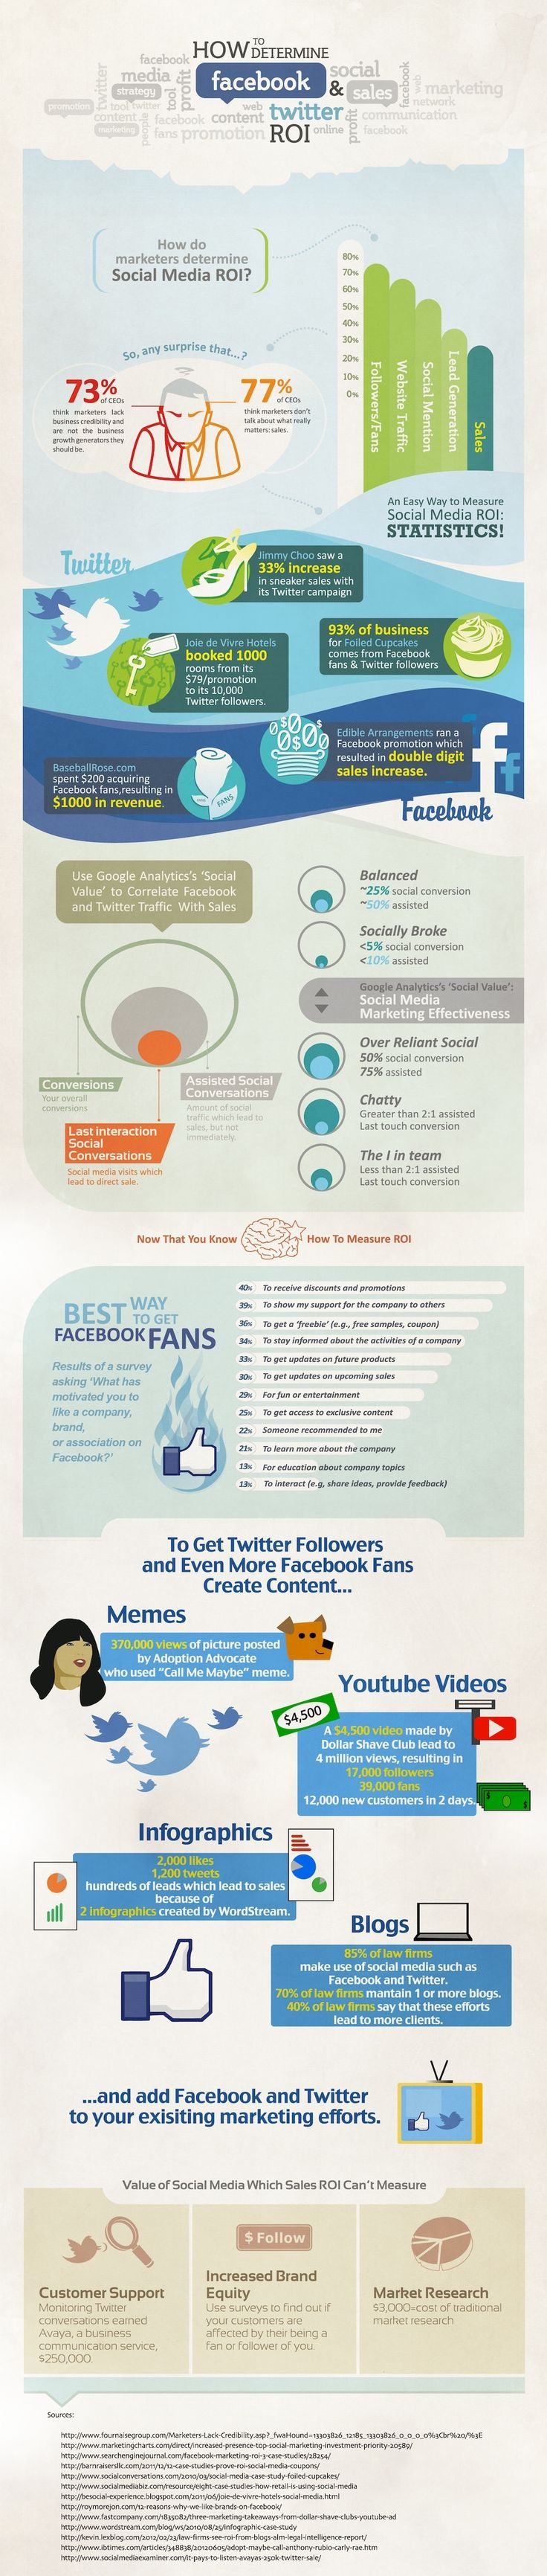 How to measure ROI in Twitter, Facebook and GooglePlus